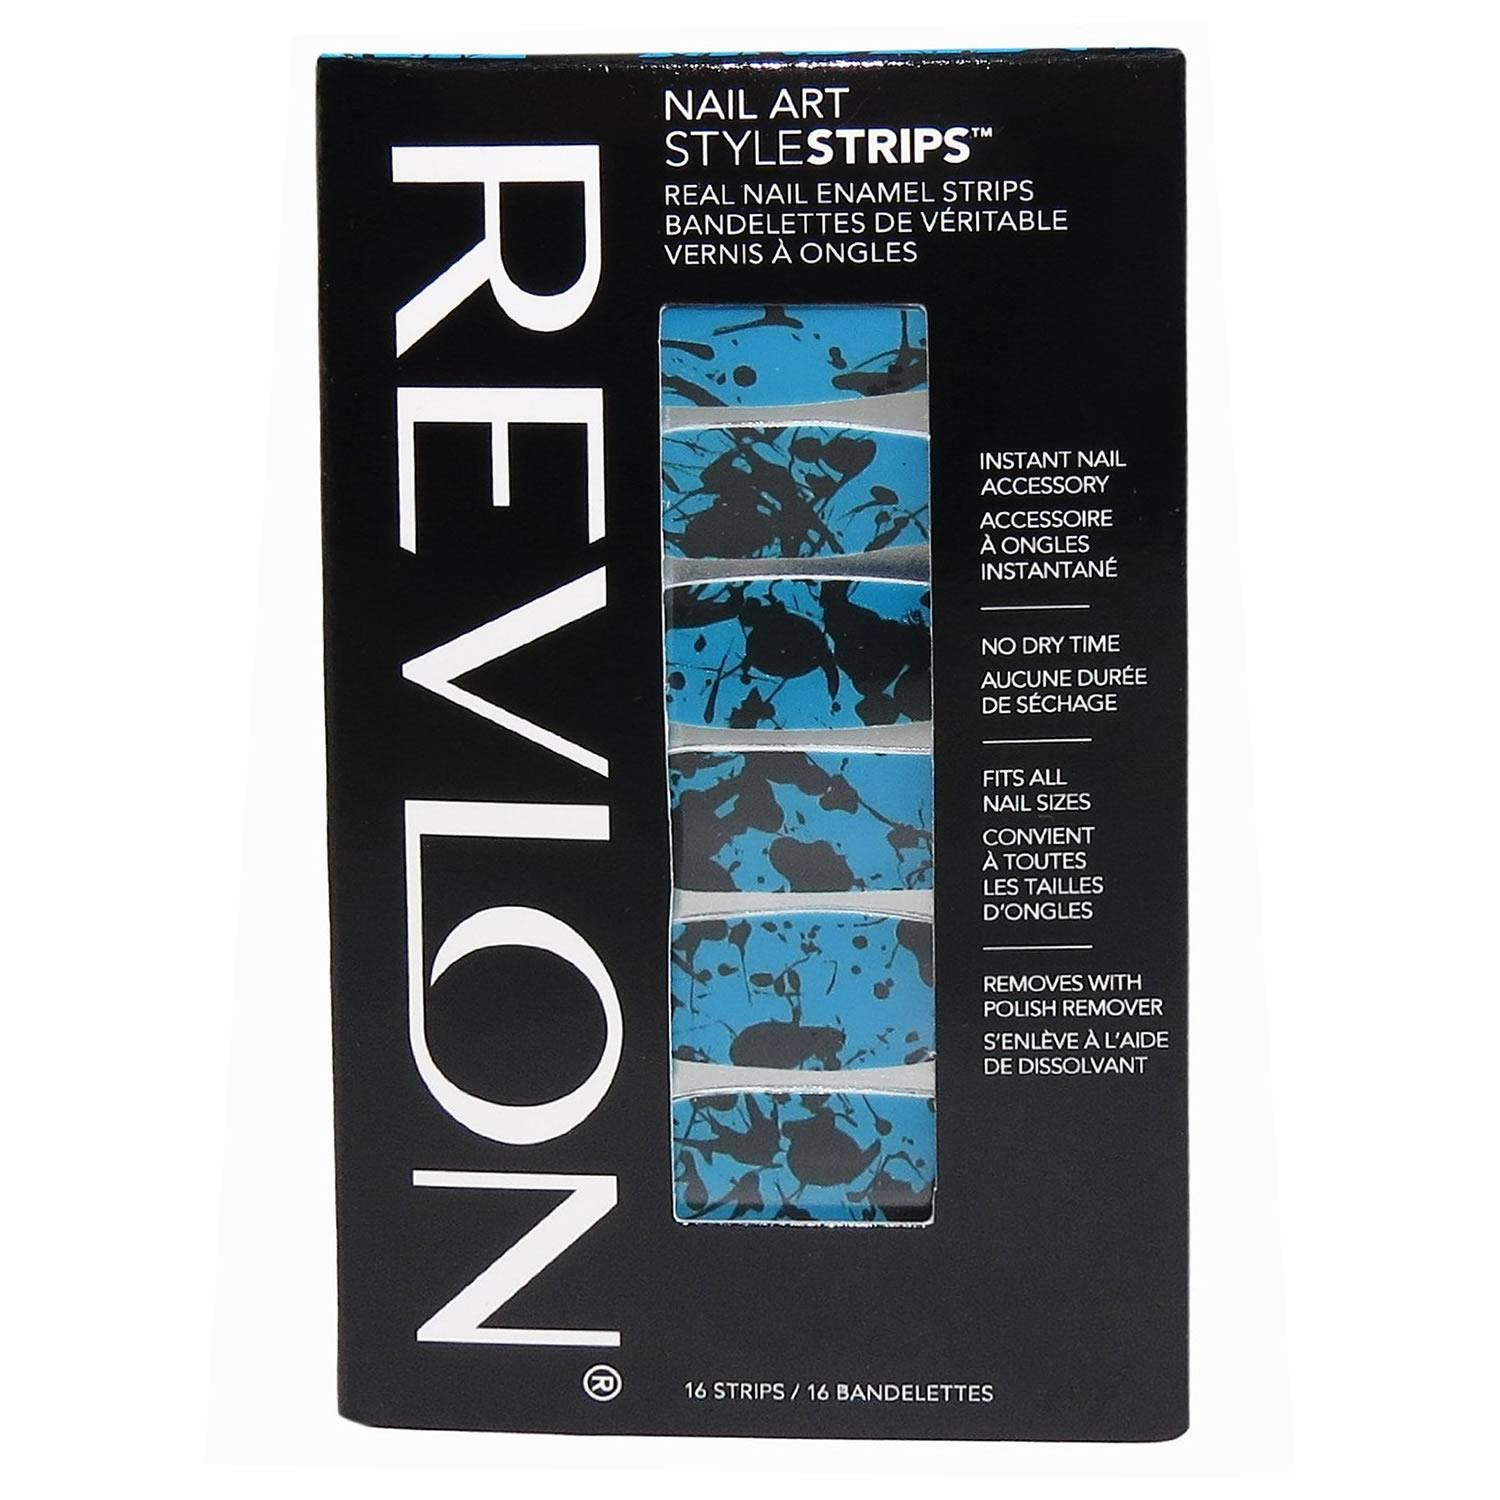 Revlon Nail Art Style Strips Blue and Black Paint Splatter